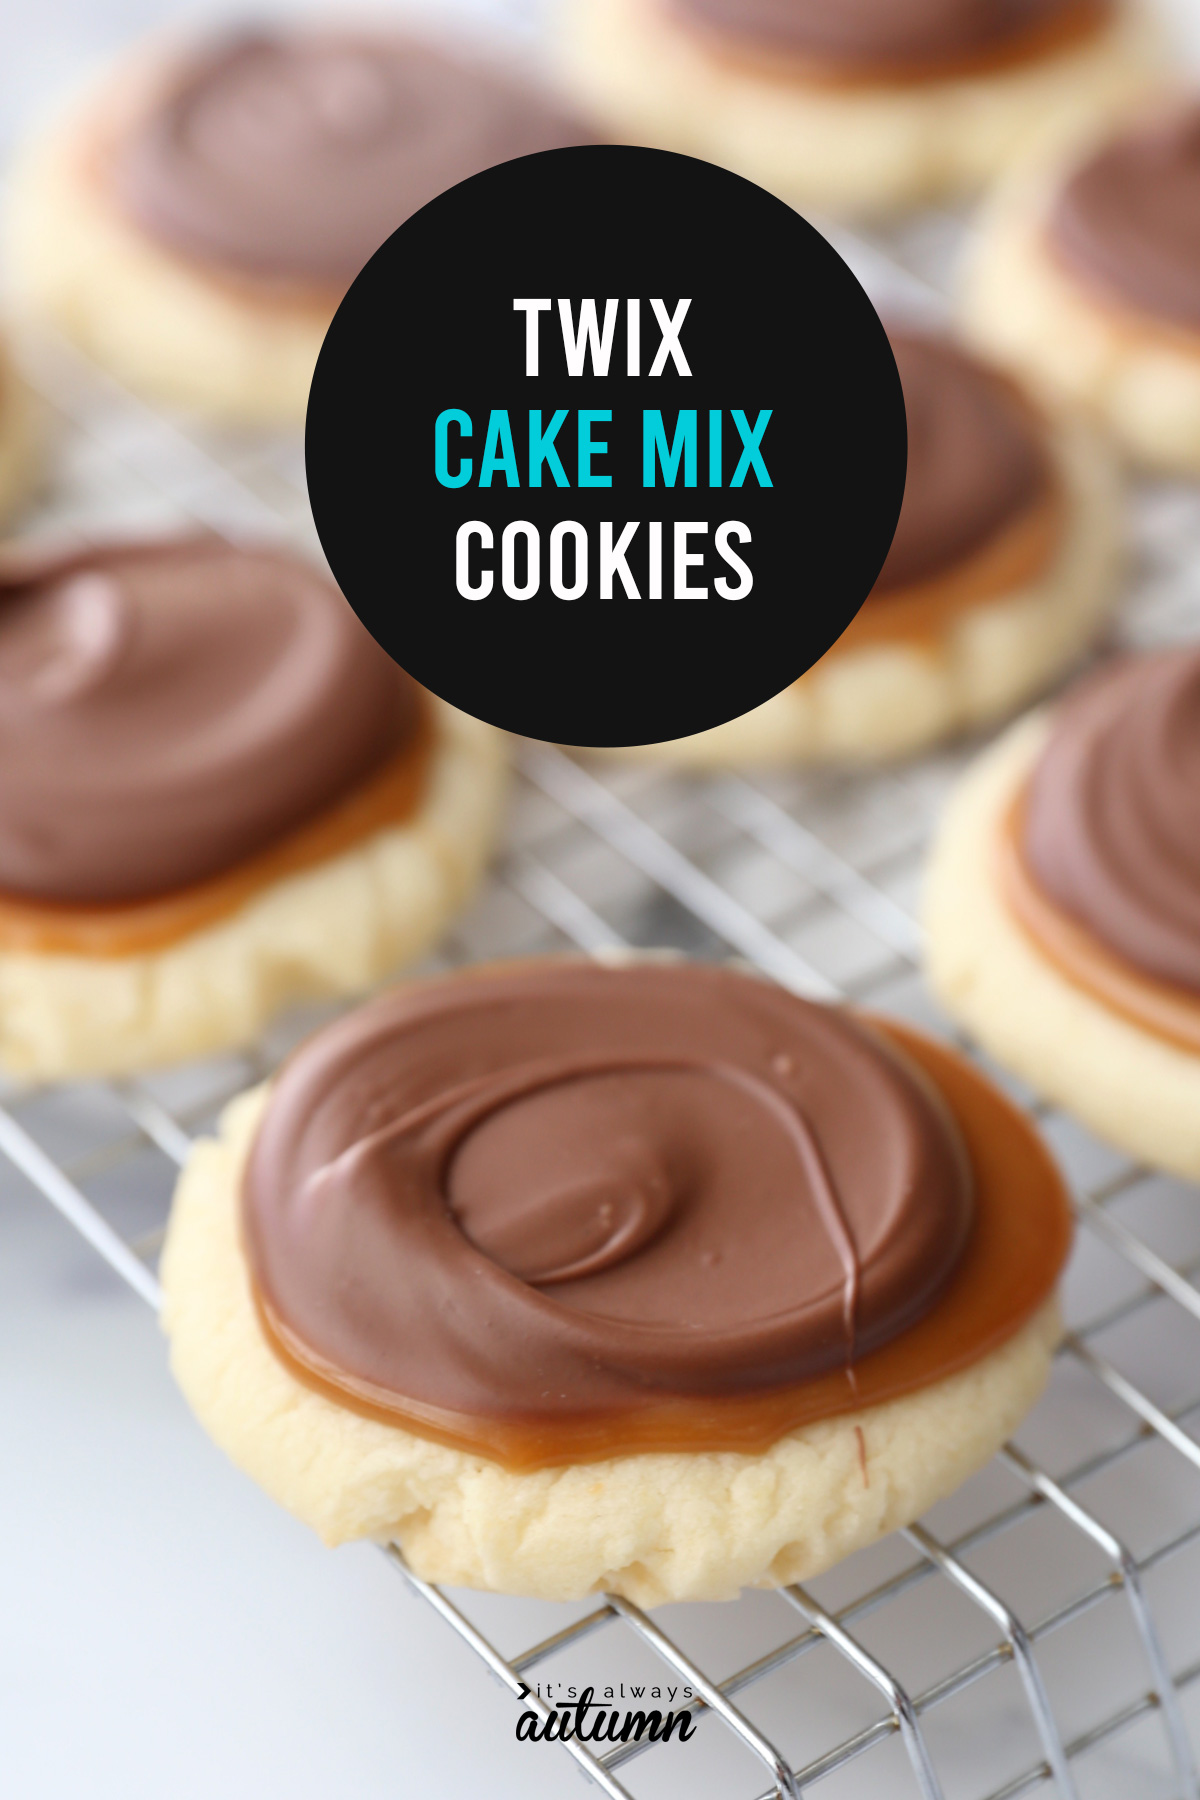 These delicious twix cookies are quick and easy to make because they start with a cake mix!